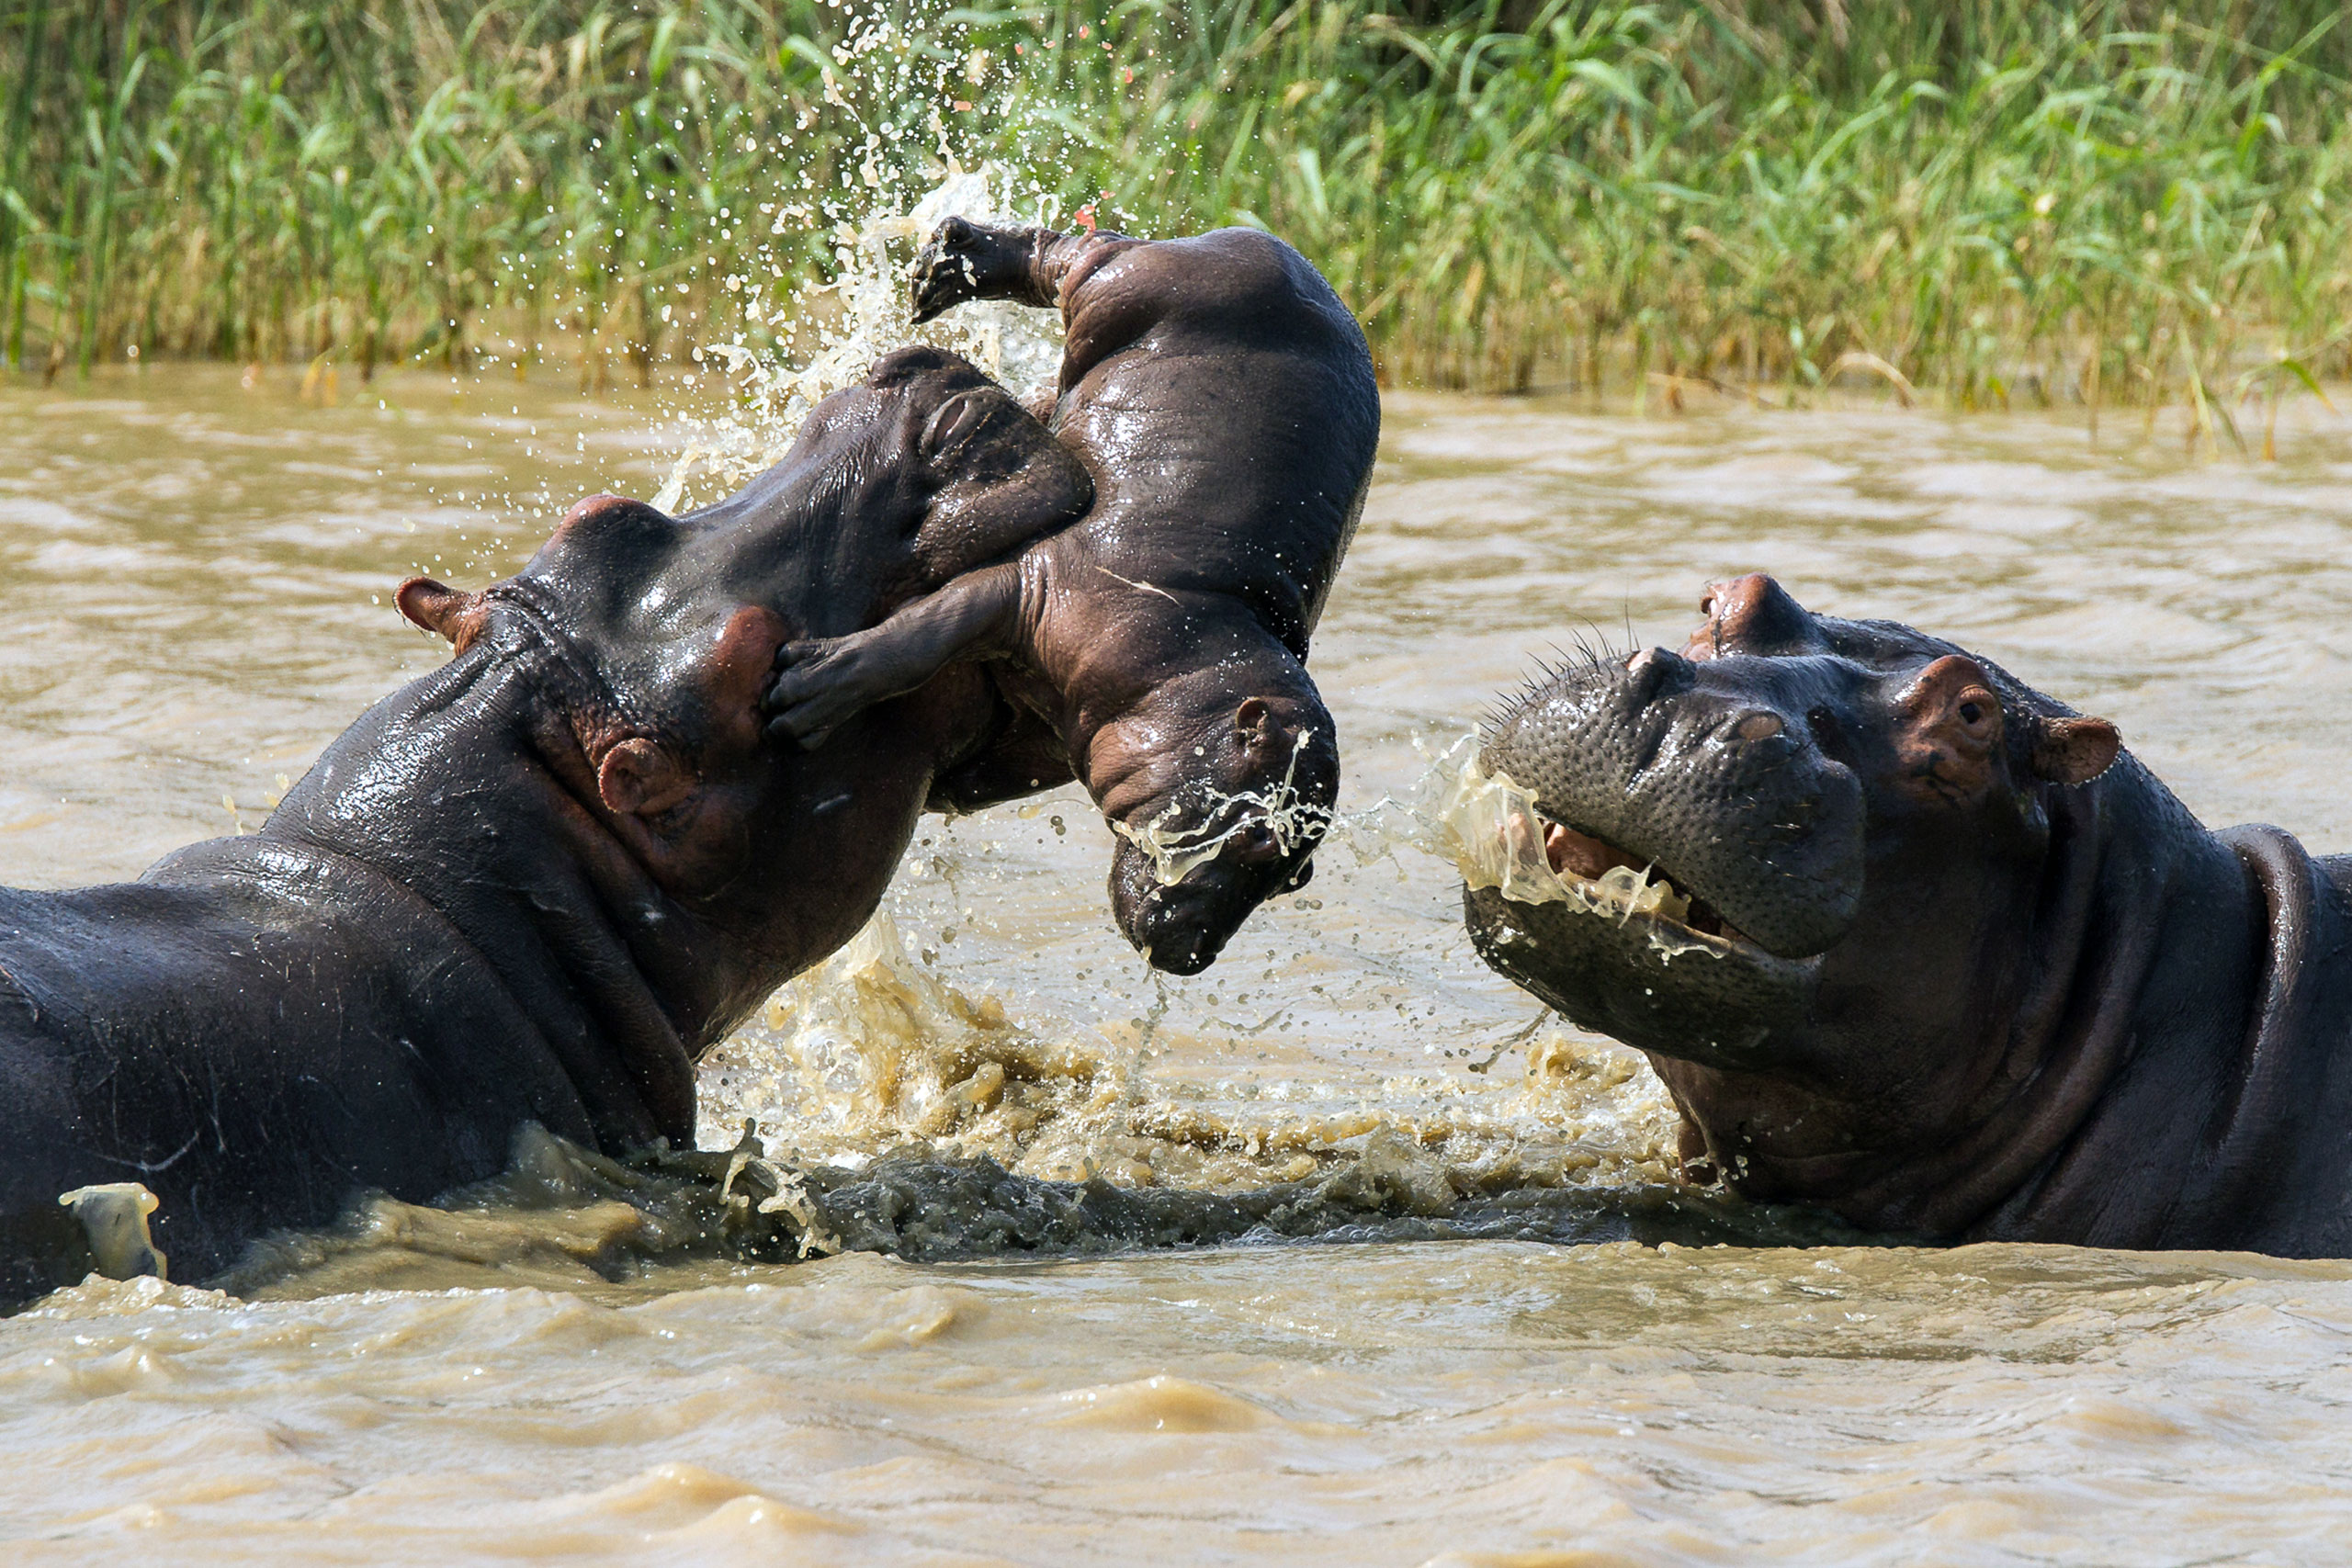 An sub-adult hippo tosses a small calf into the air as the distressed mother watches, iSimangaliso Wetland Park, South Africa, April 4, 2015.